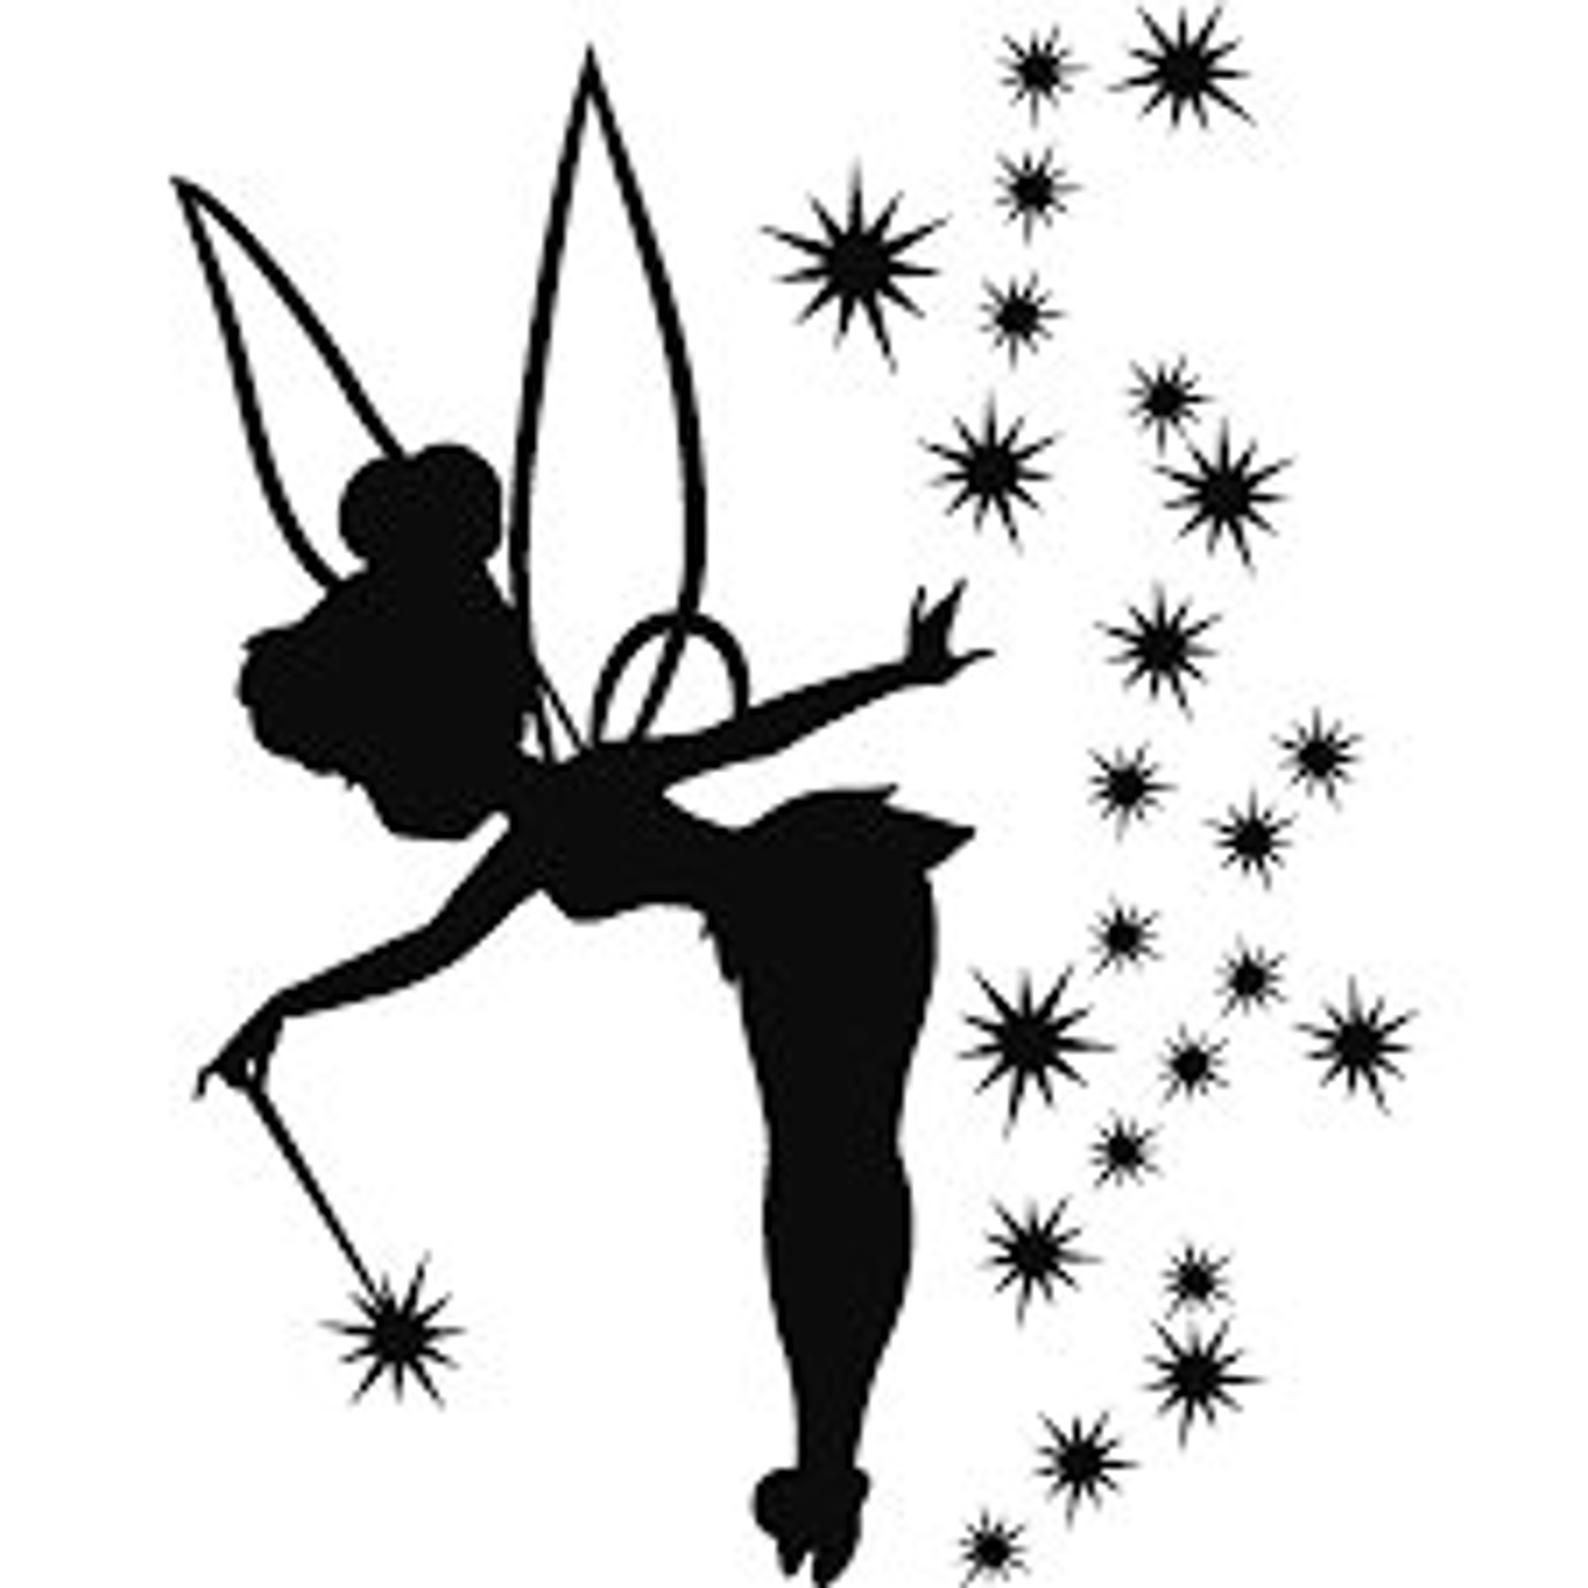 Tinkerbell With Wand Decal 4 X 6 1 2 Tinkerbell Pumpkin Stencil Fairy Silhouette Disney Silhouettes